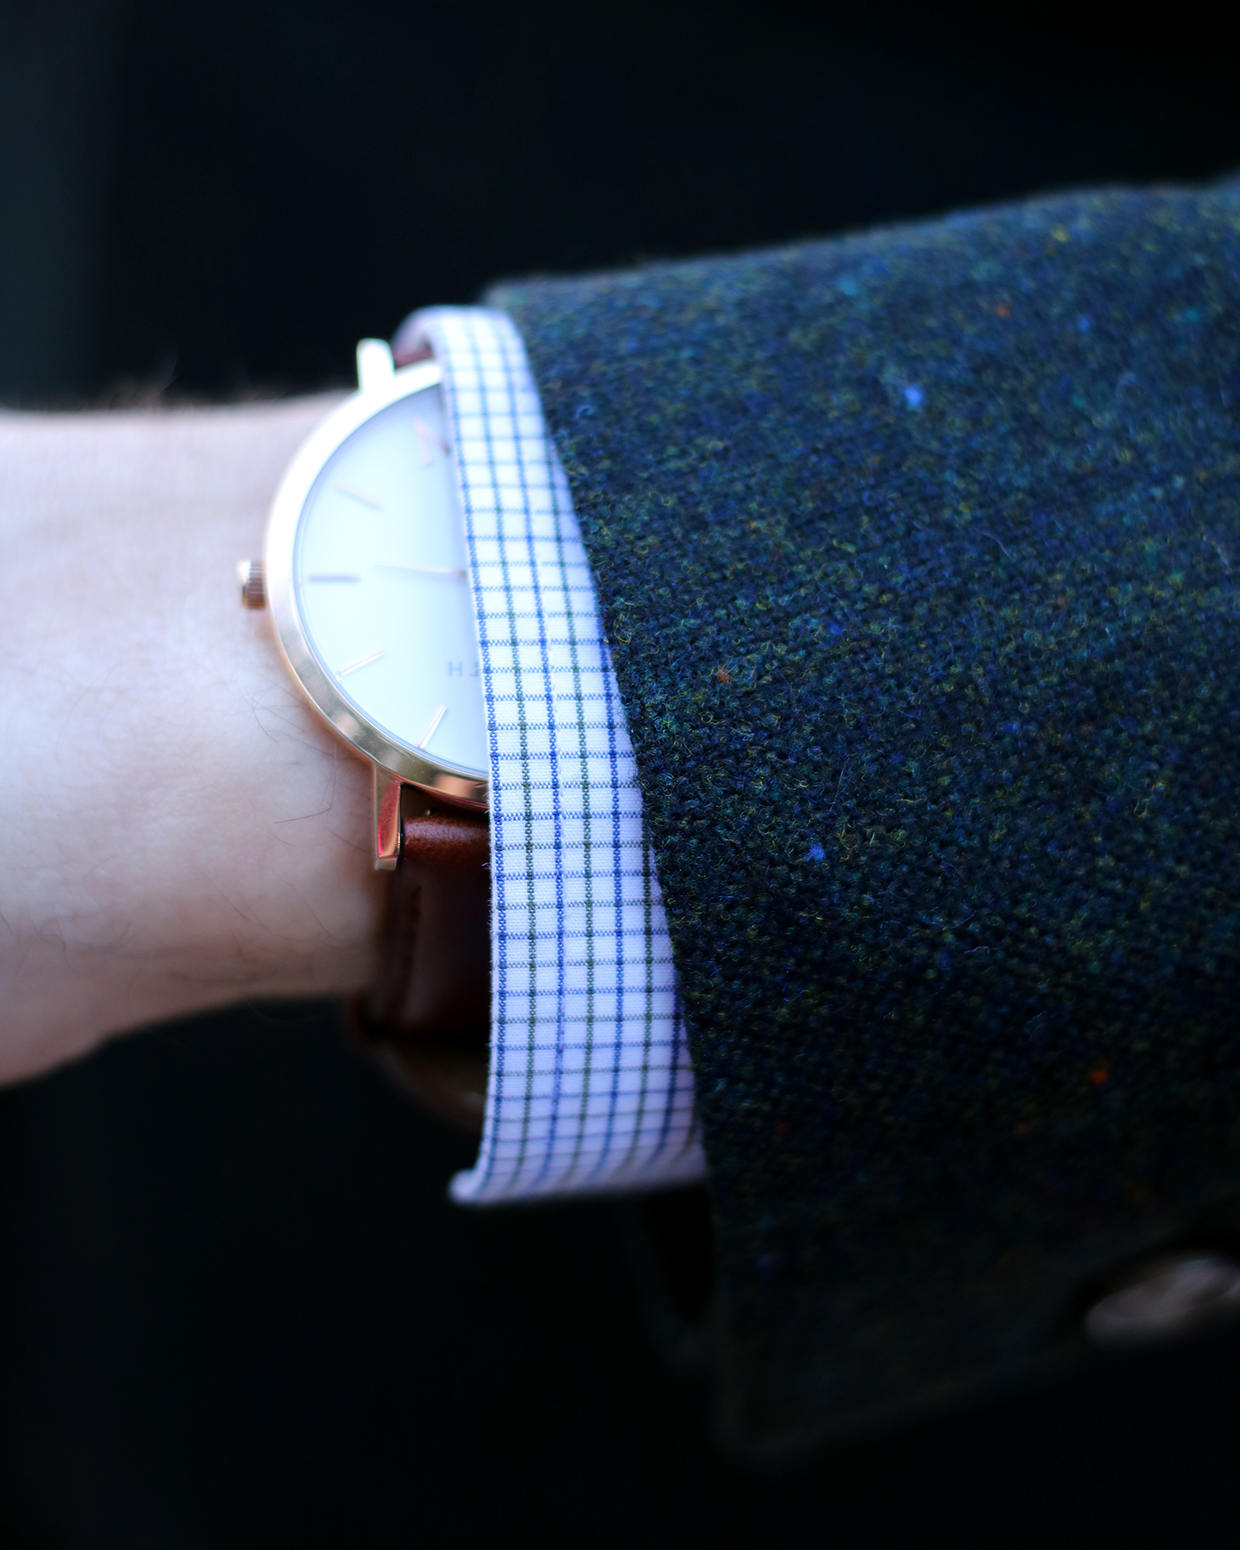 Jacket sleeve cuff and watch